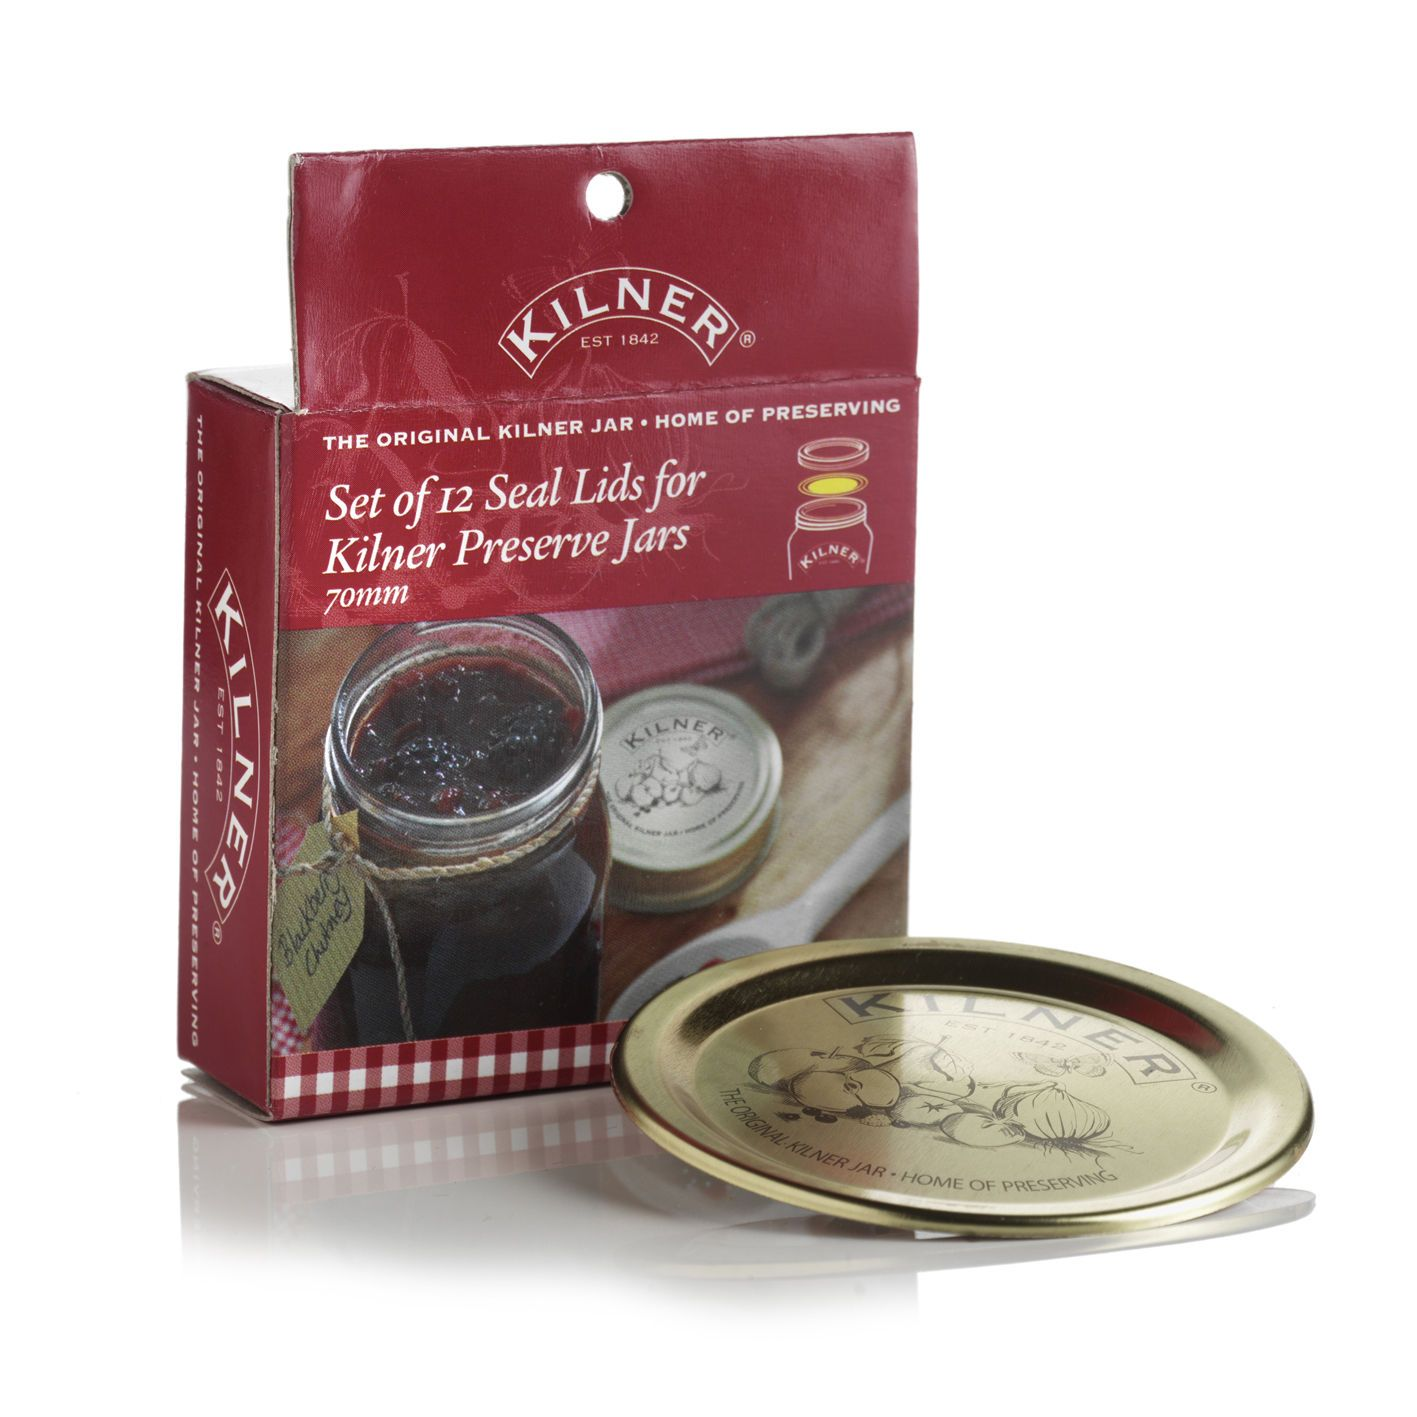 online screw kilner at buy nisbets bands preserve